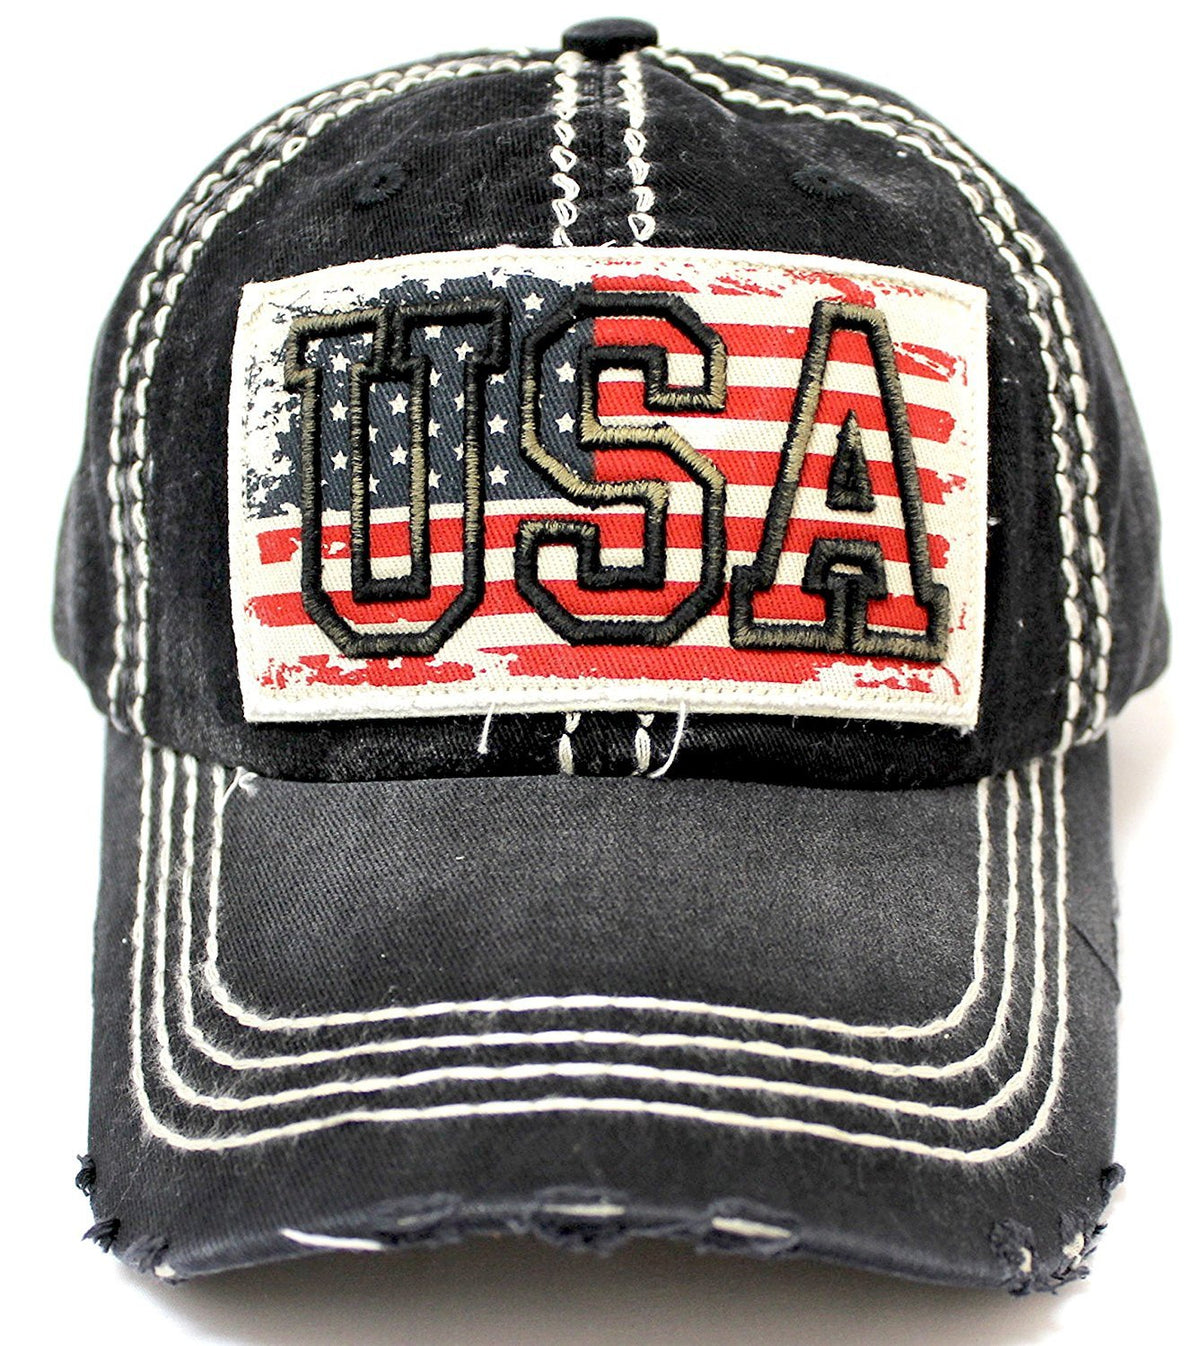 BLACK Vintage USA Flag Embroidery Patch Adjustable Baseball Cap - Caps 'N Vintage